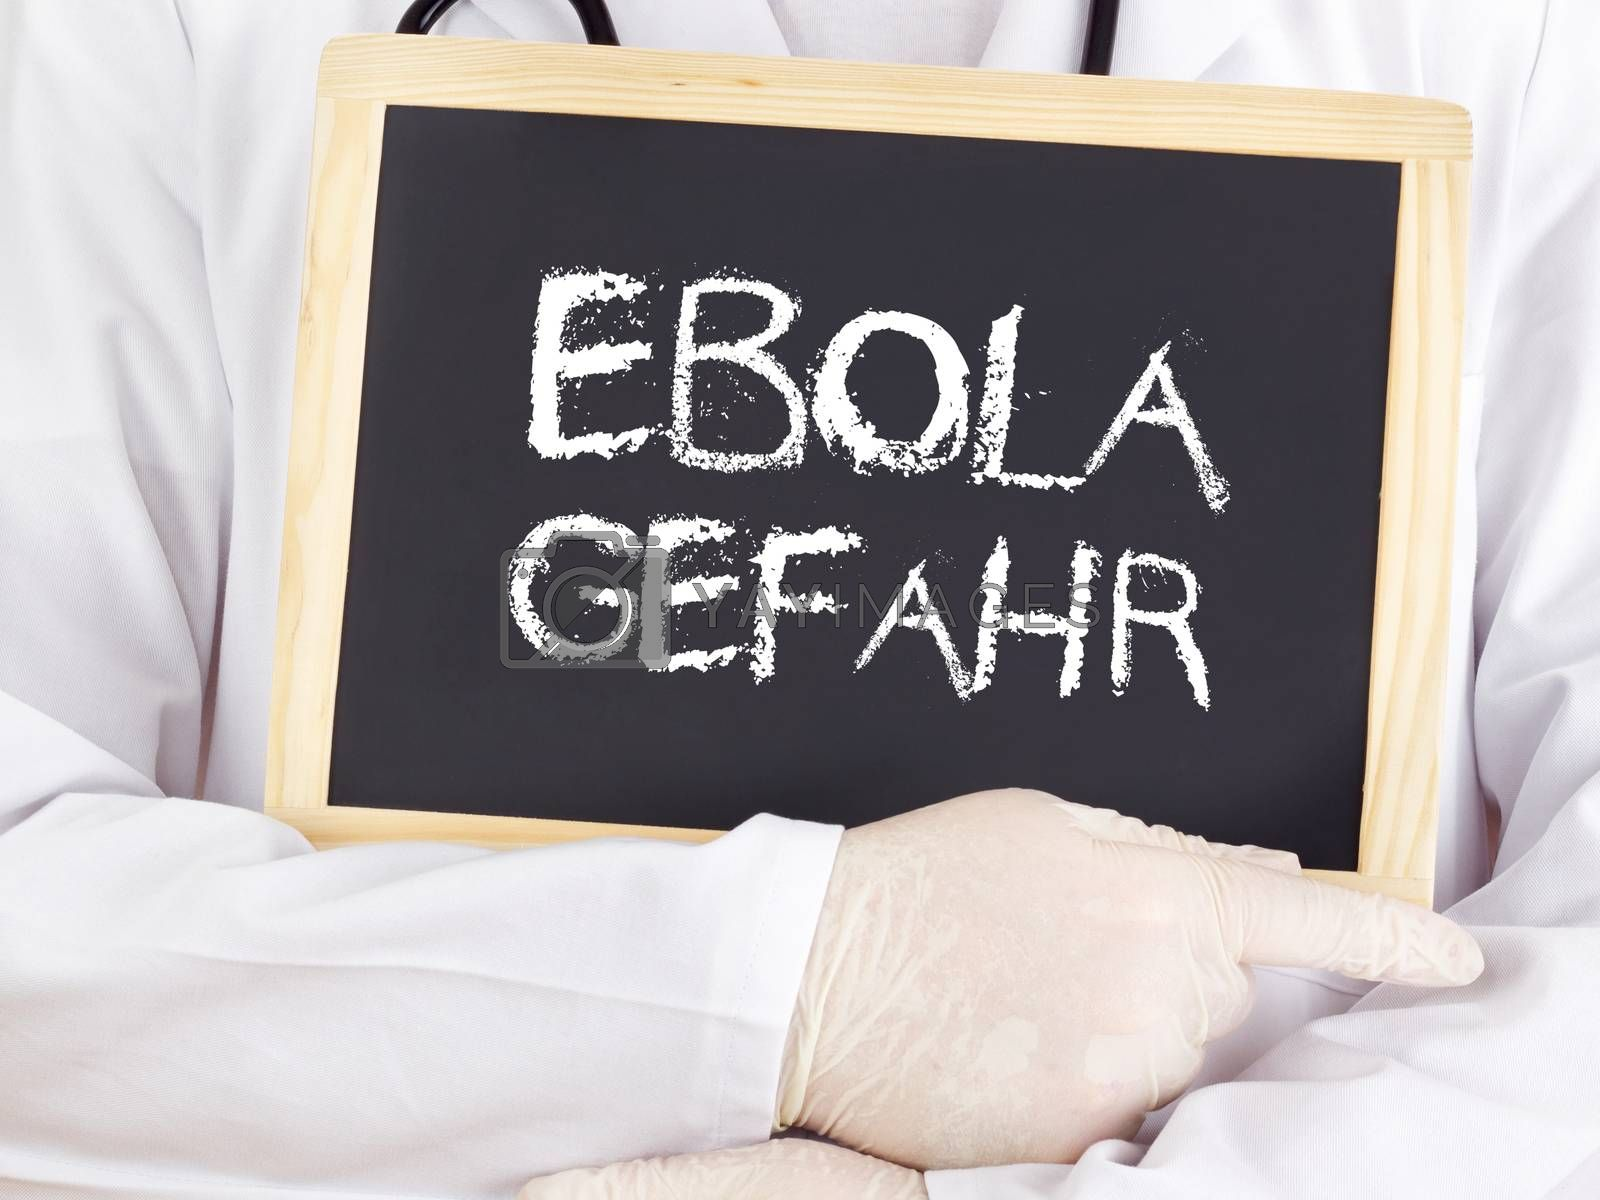 Doctor shows information: Ebola risk in german language